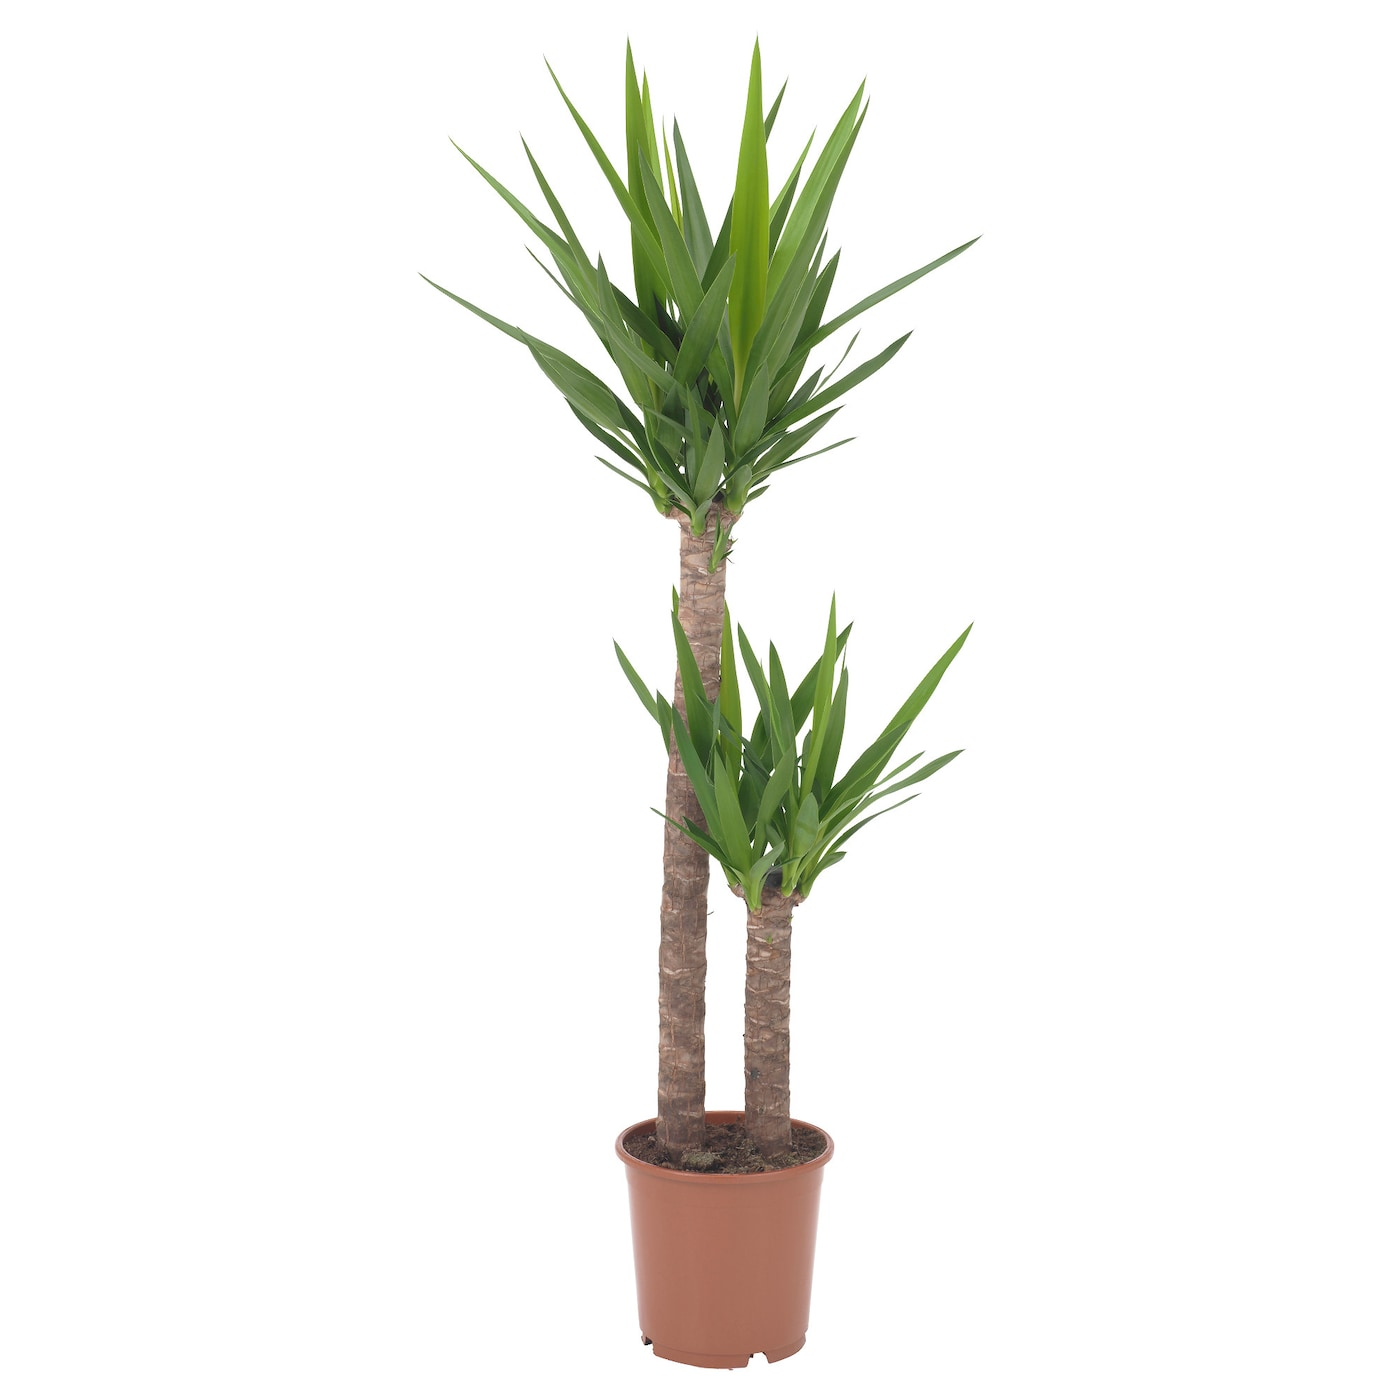 yucca elephantipes potted plant spineless yucca 2 stem 24. Black Bedroom Furniture Sets. Home Design Ideas